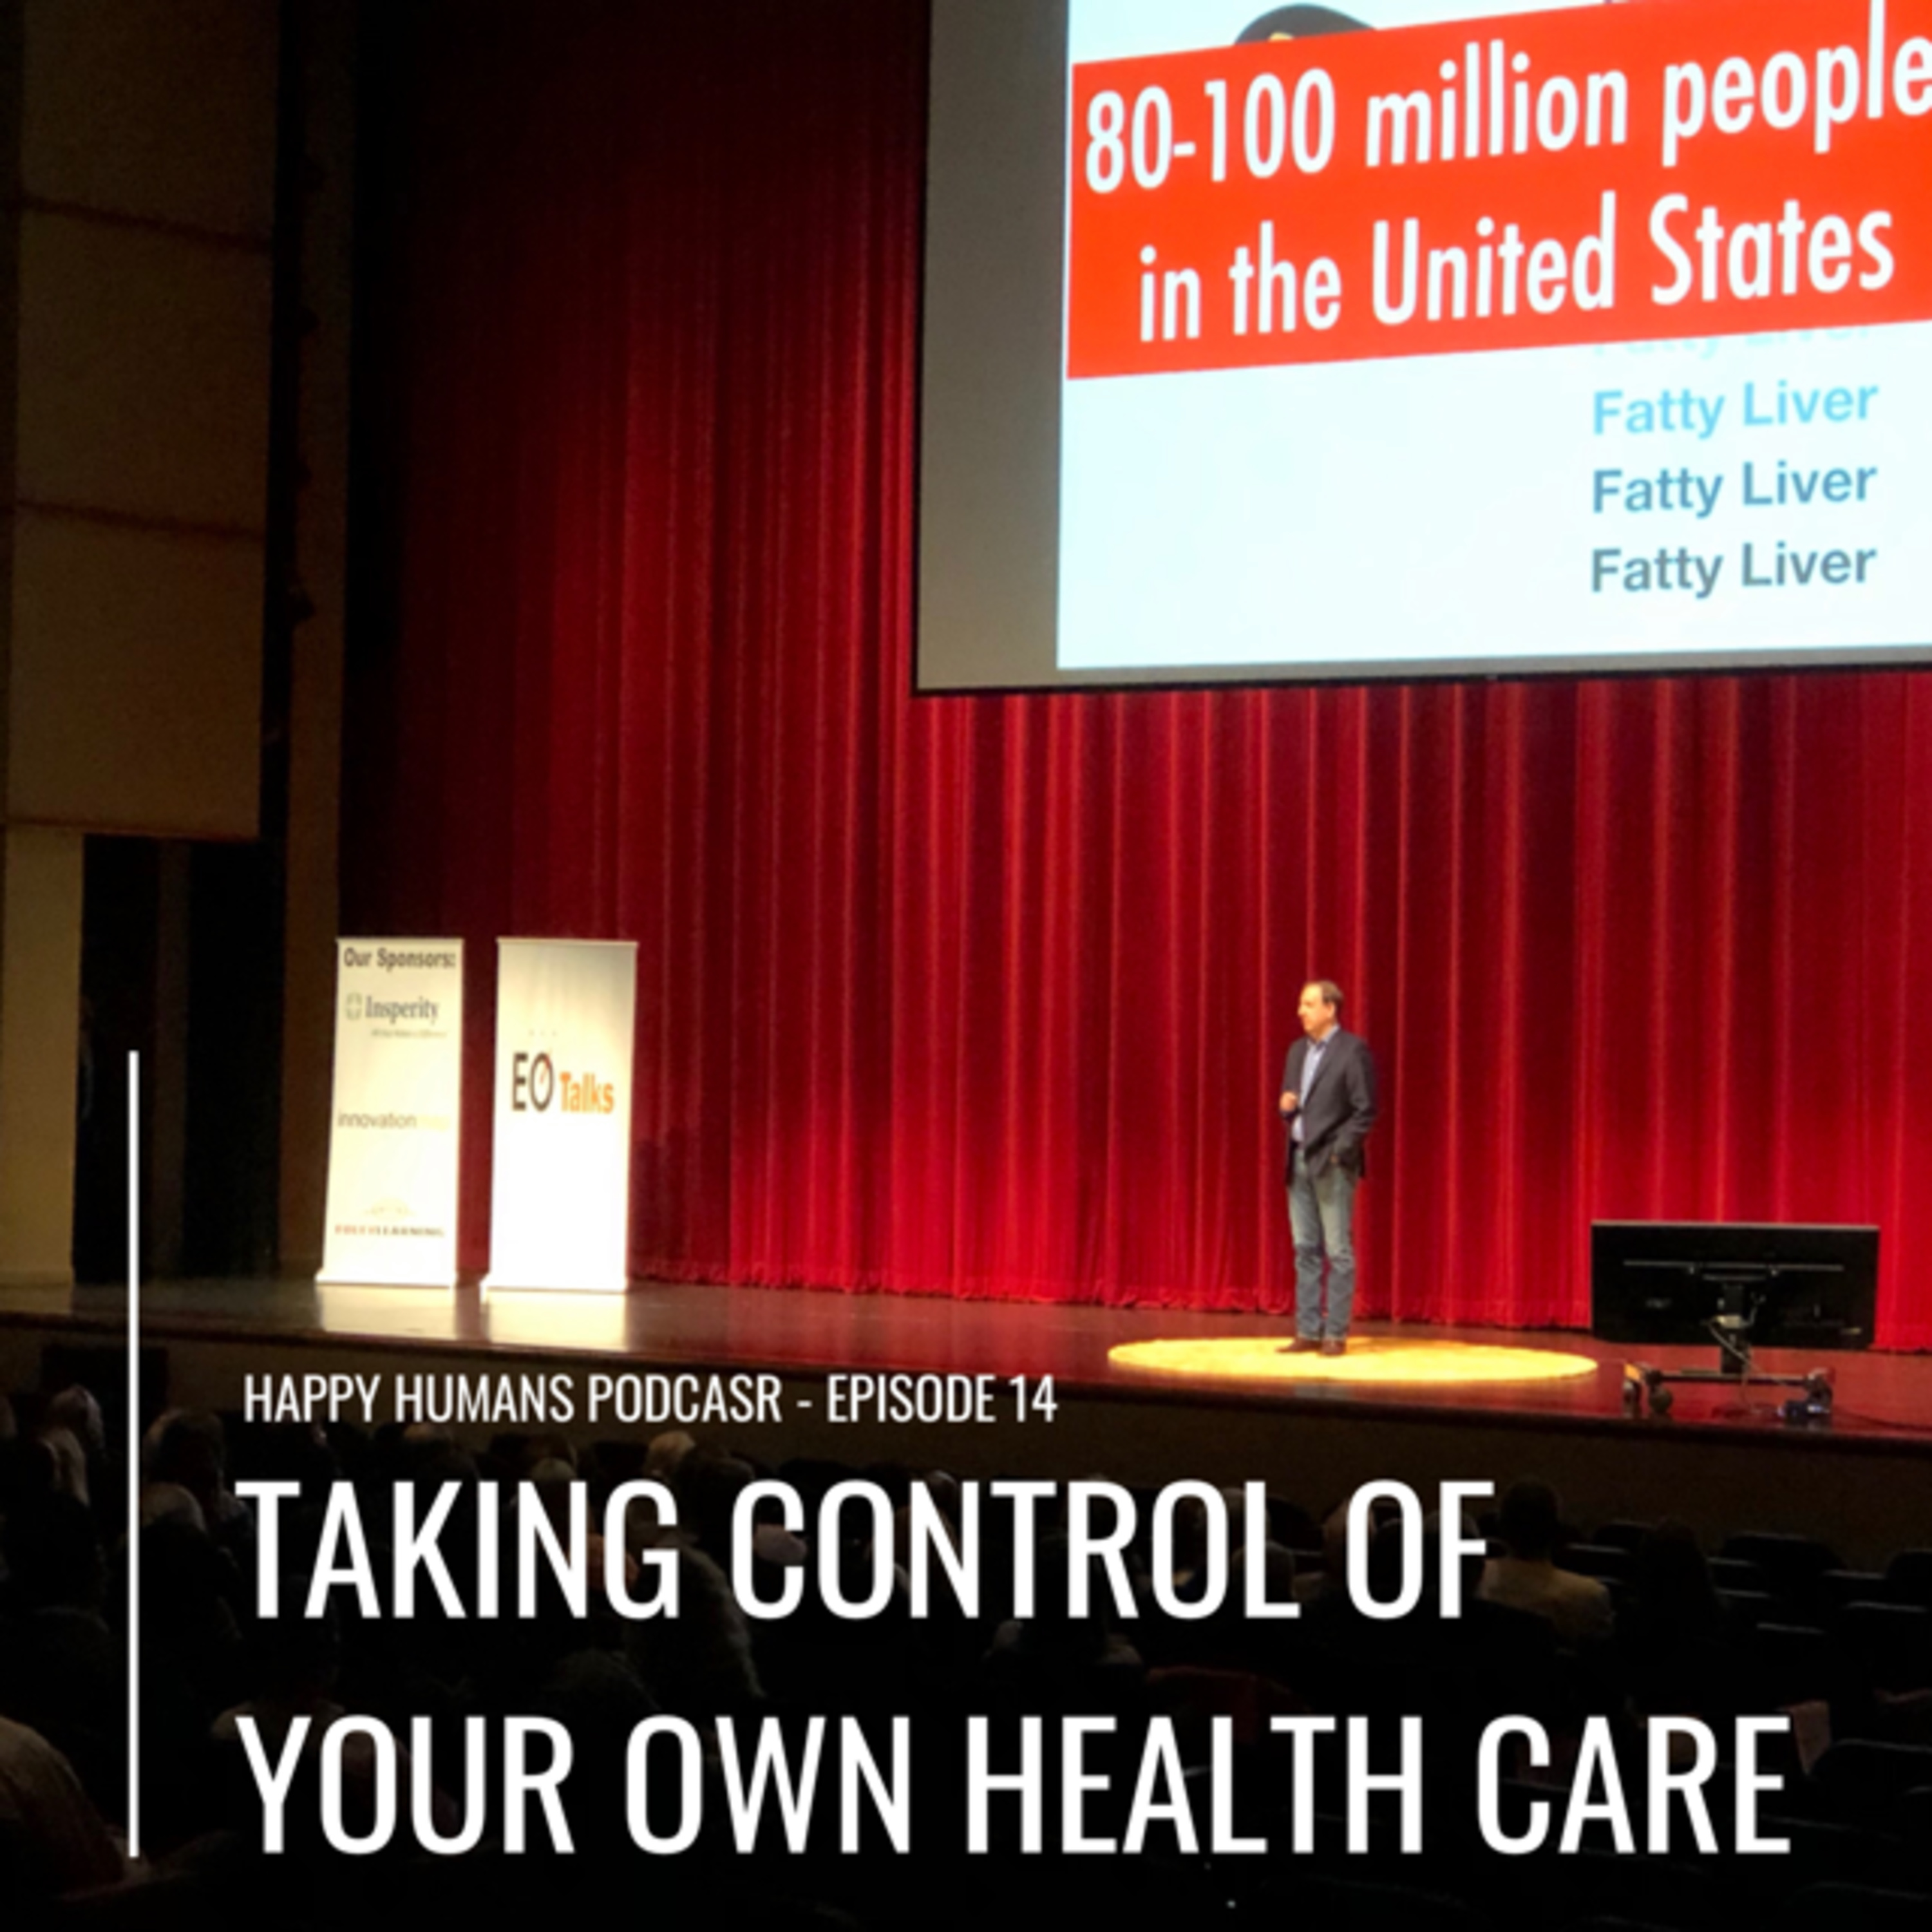 Episode 14 - Taking Control of Your Own Health Care